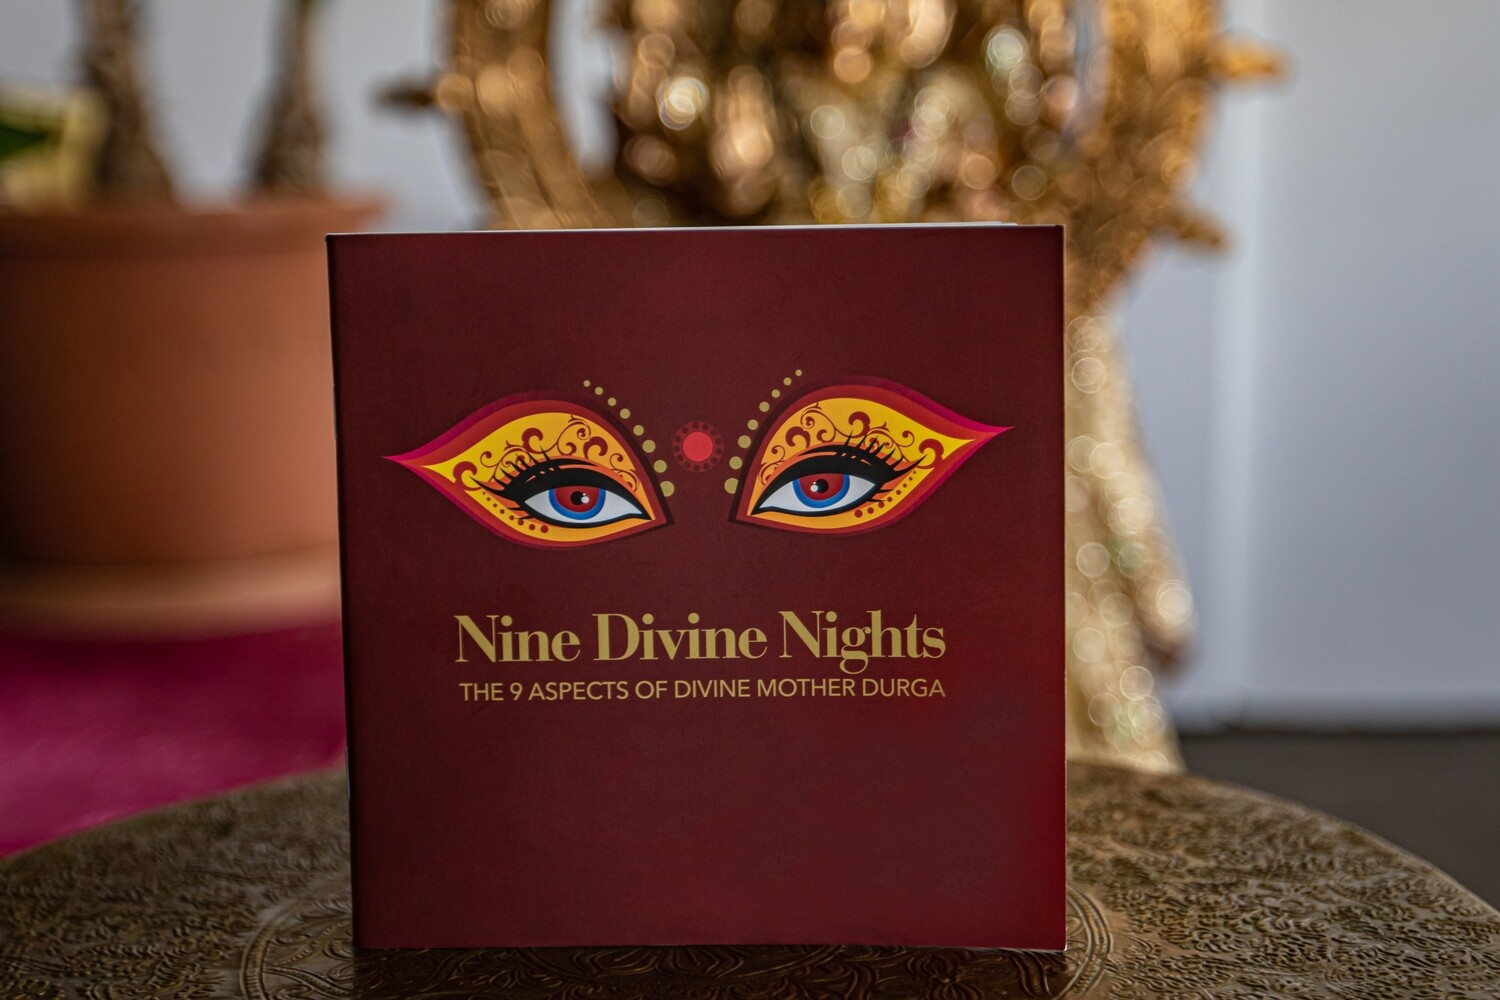 Nine Divine Nights - The 9 Aspects of Divine Mother Durga